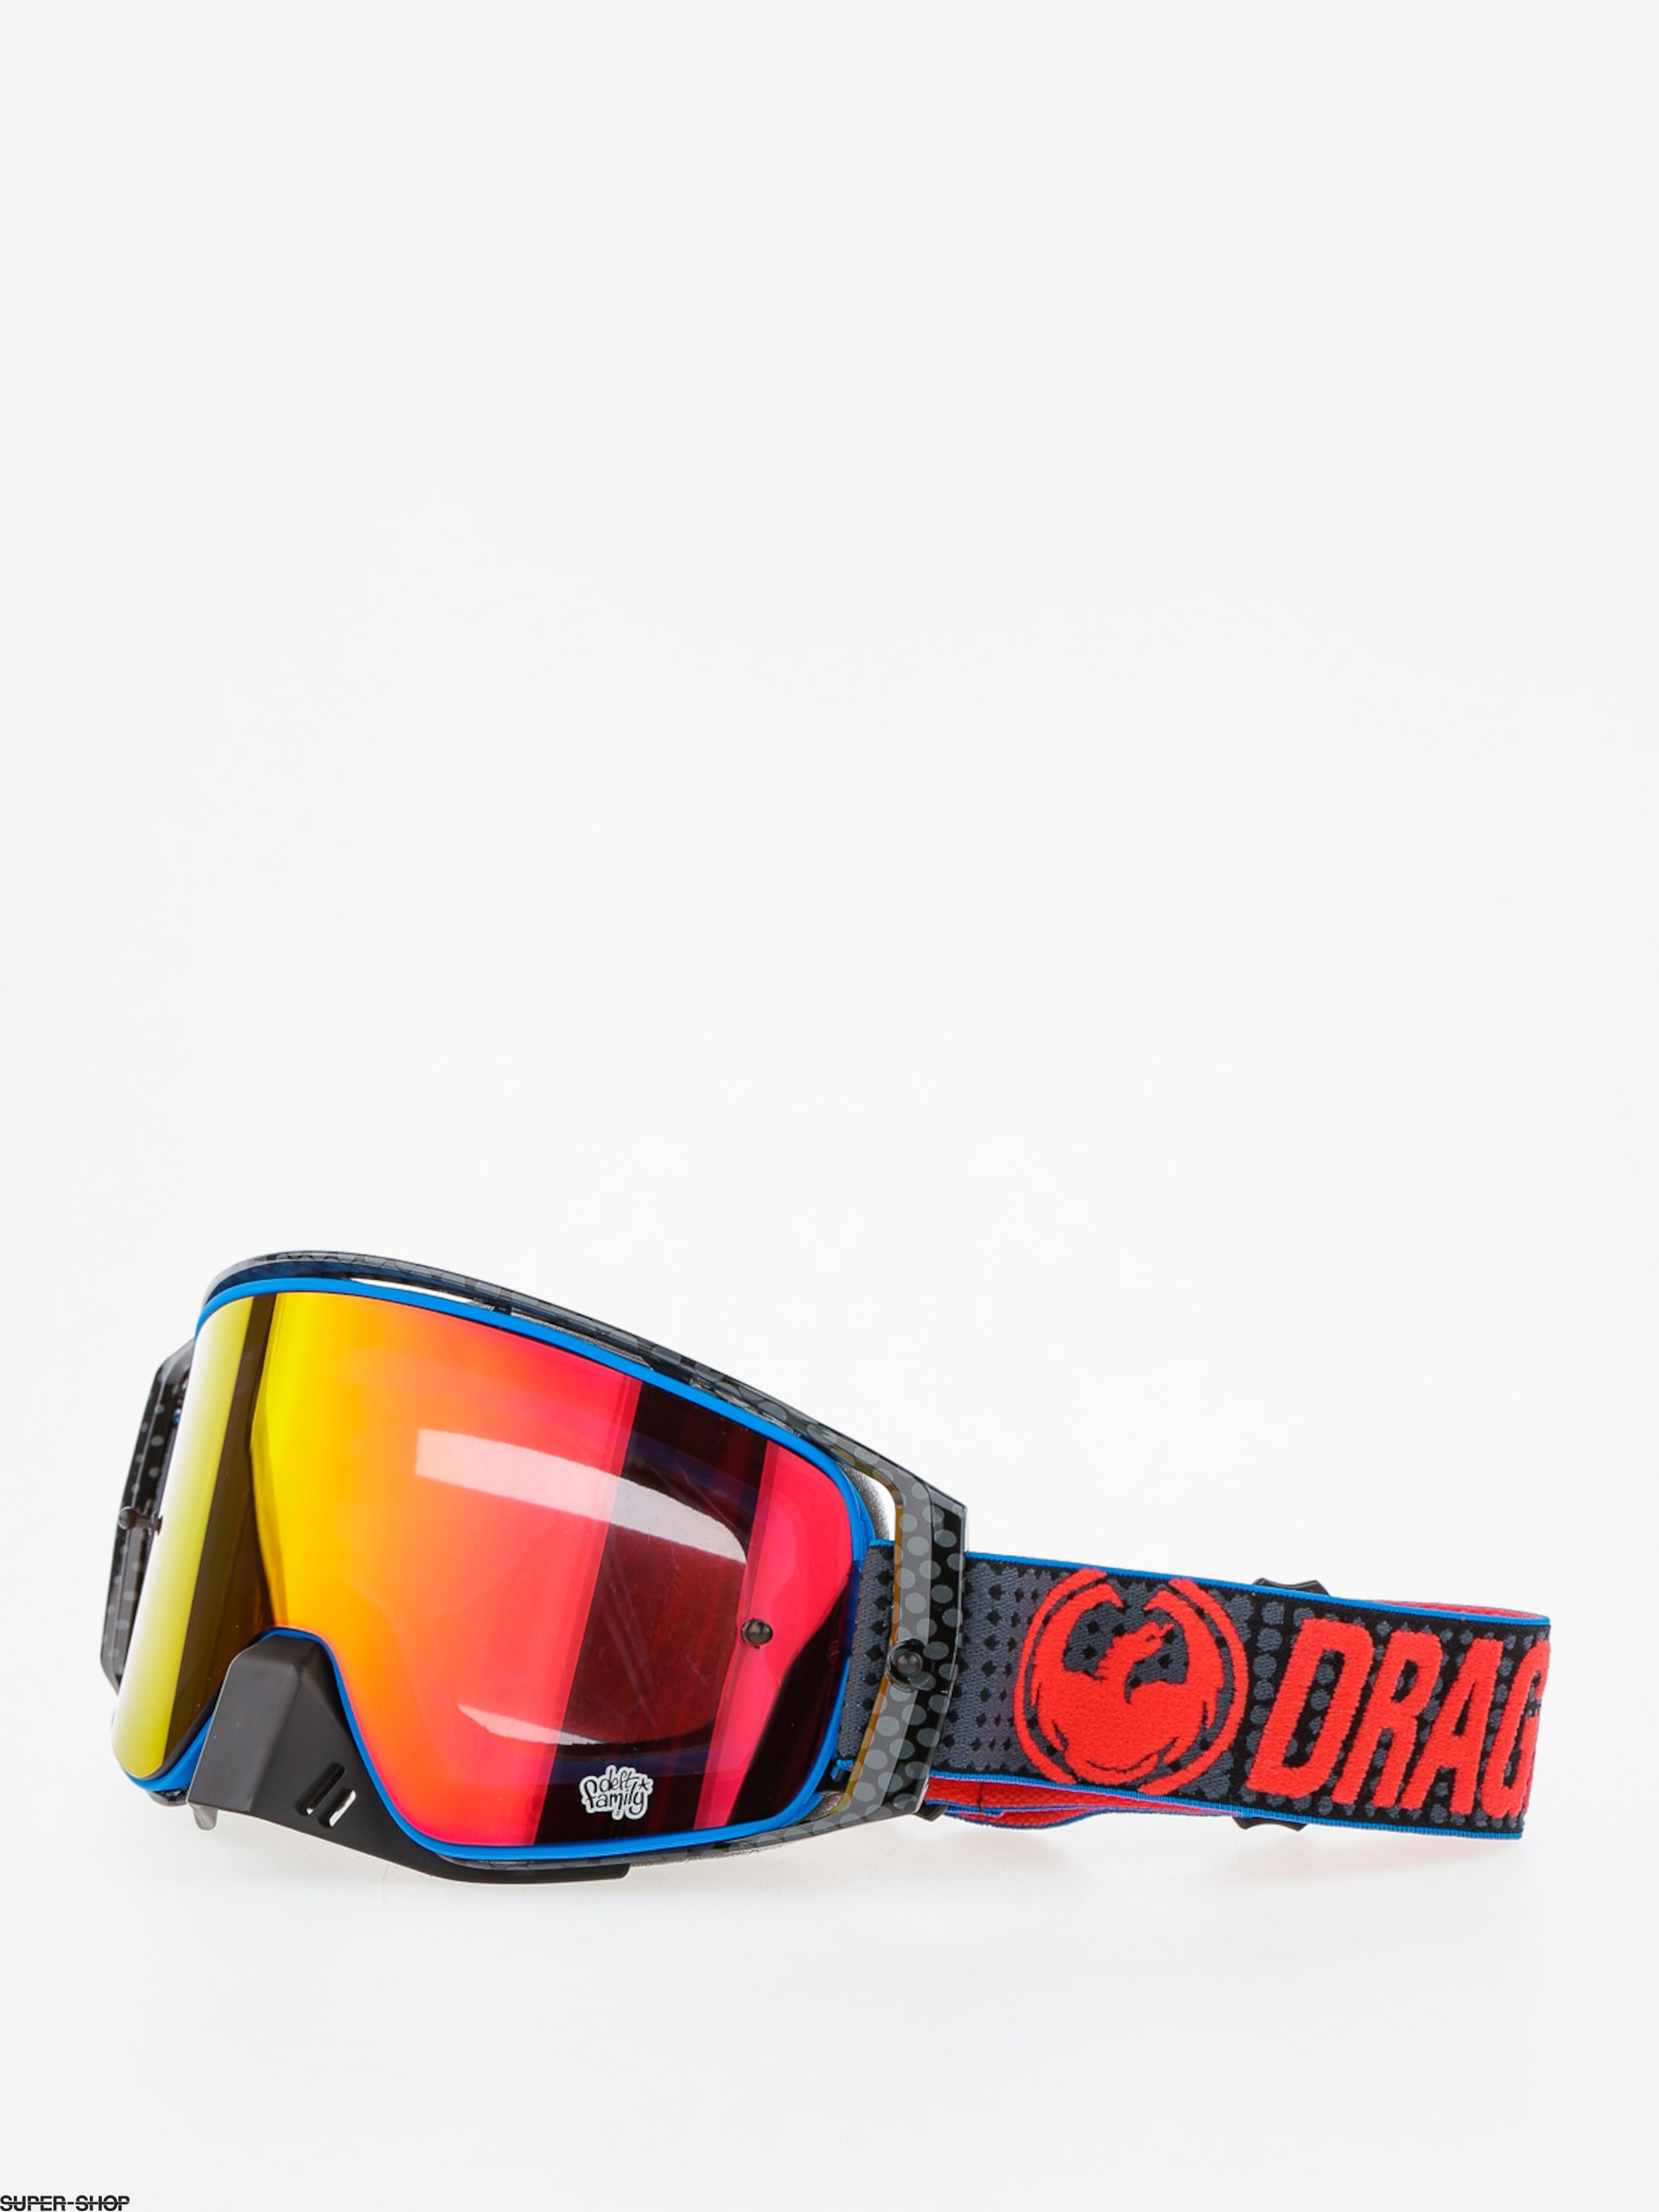 628ebbc66 910488-w1920-dragon-cross -goggles-nfx2-nate-adams-injected-lumalens-red-ion.jpg